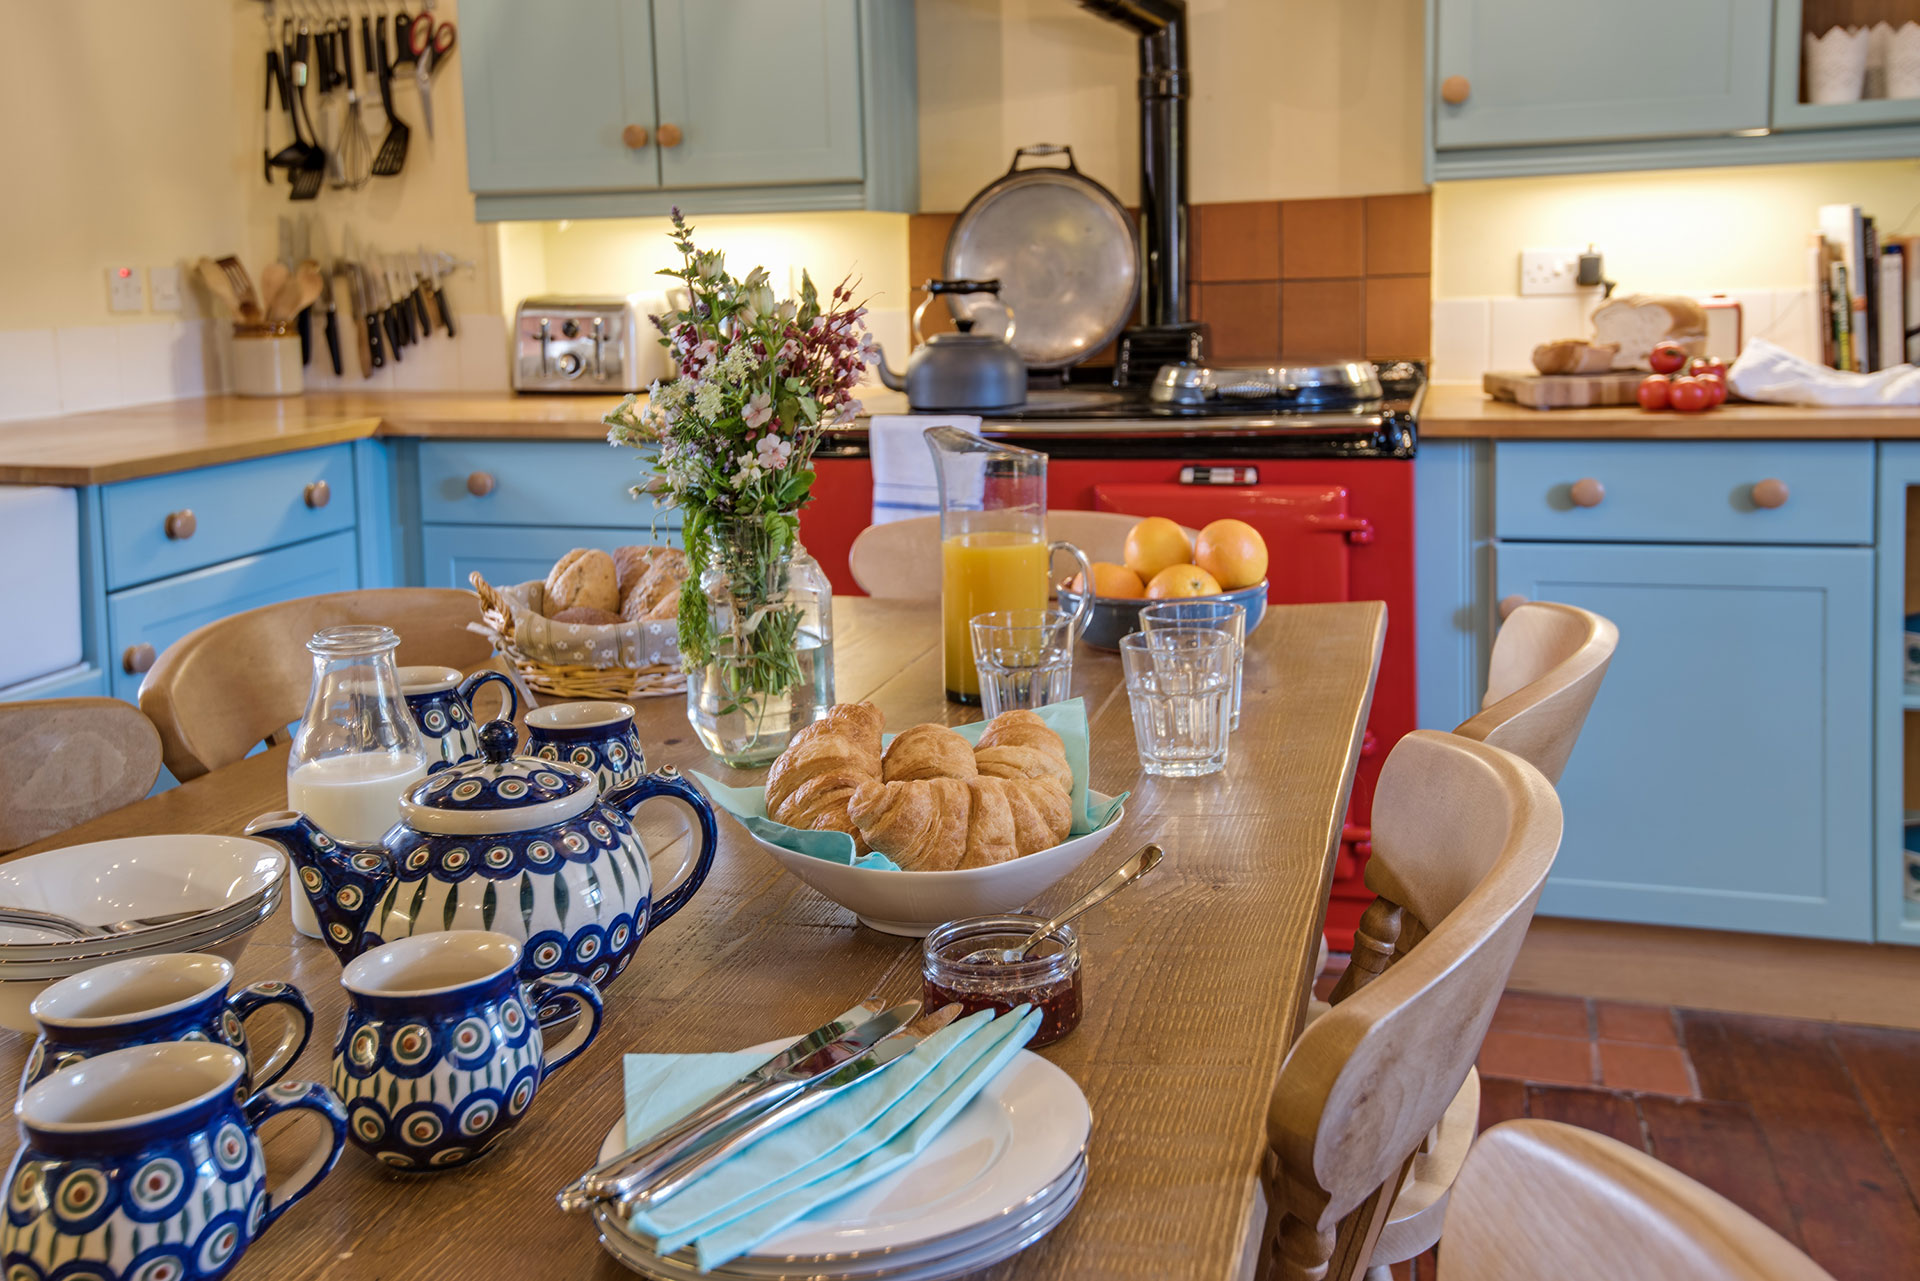 Farmhouse table set with holiday breakfast for eight